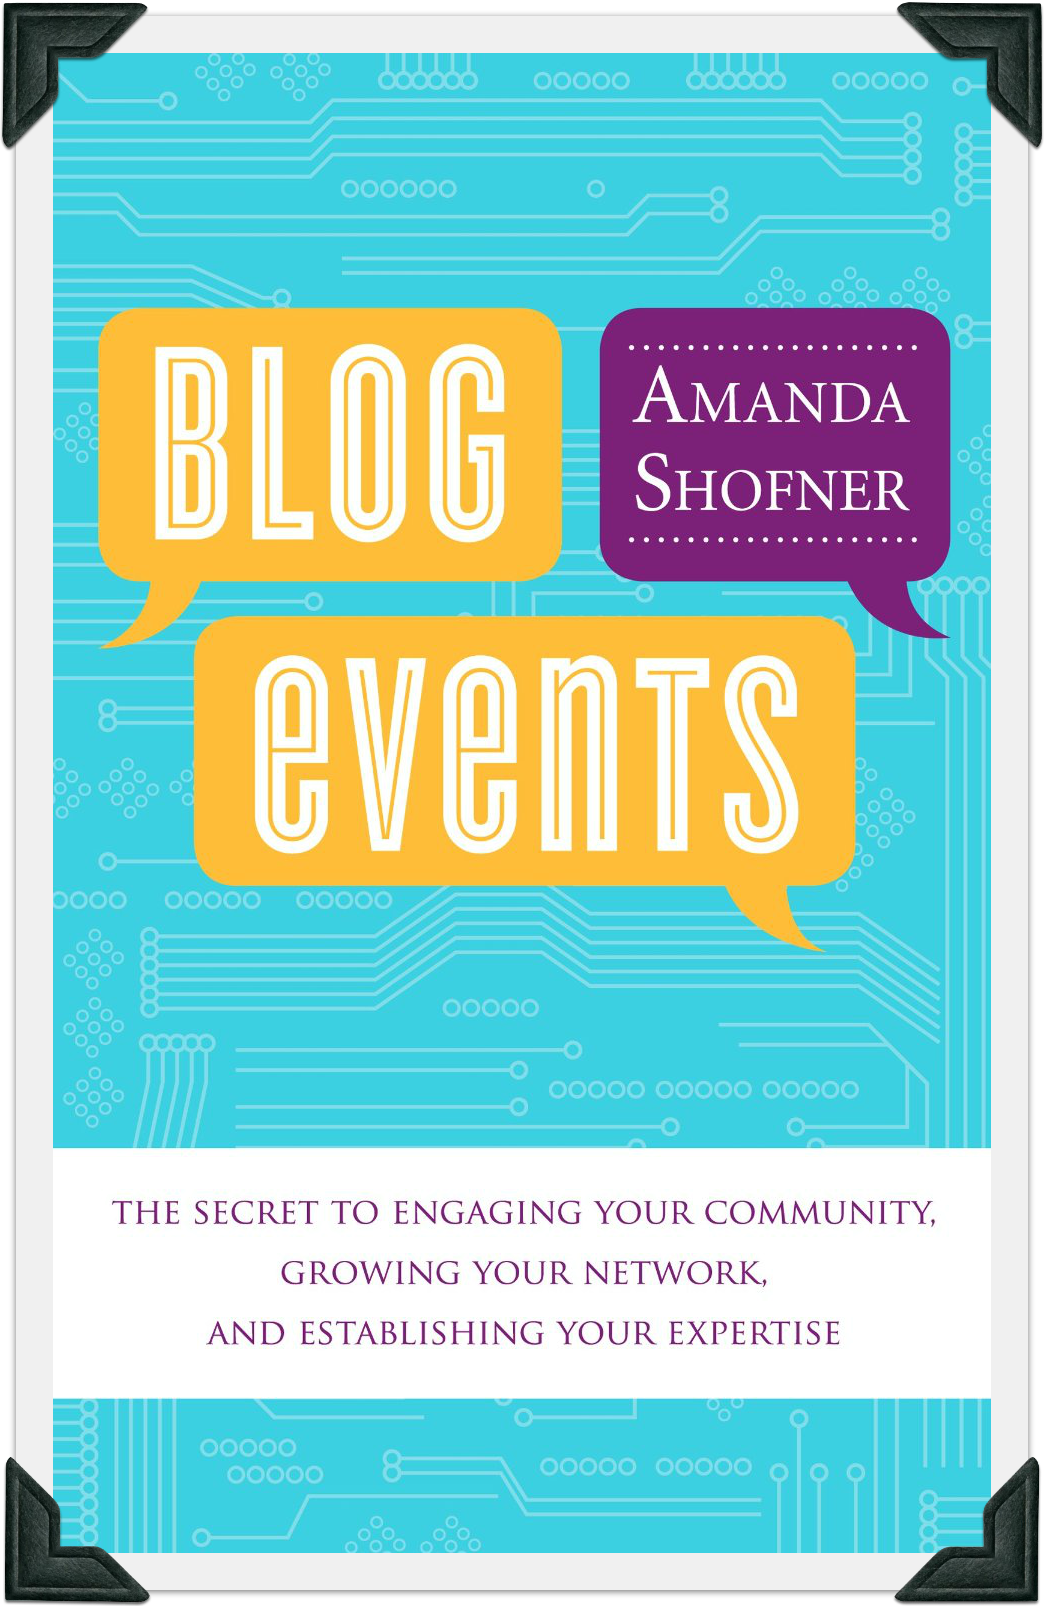 Blog Events by Amanda Shofner